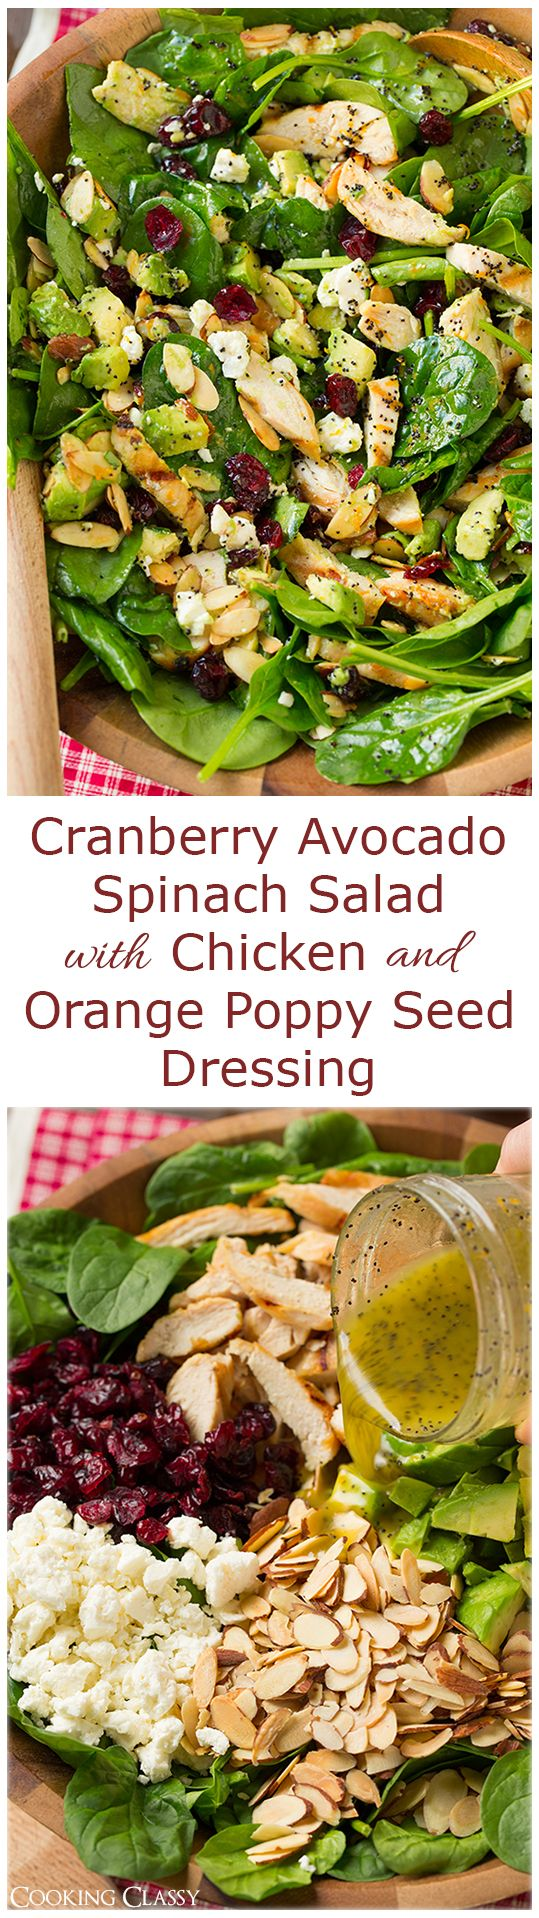 Cranberry Avocado Spinach Salad with Chicken & Orange Poppy Seed Dressing #fresh #healthy